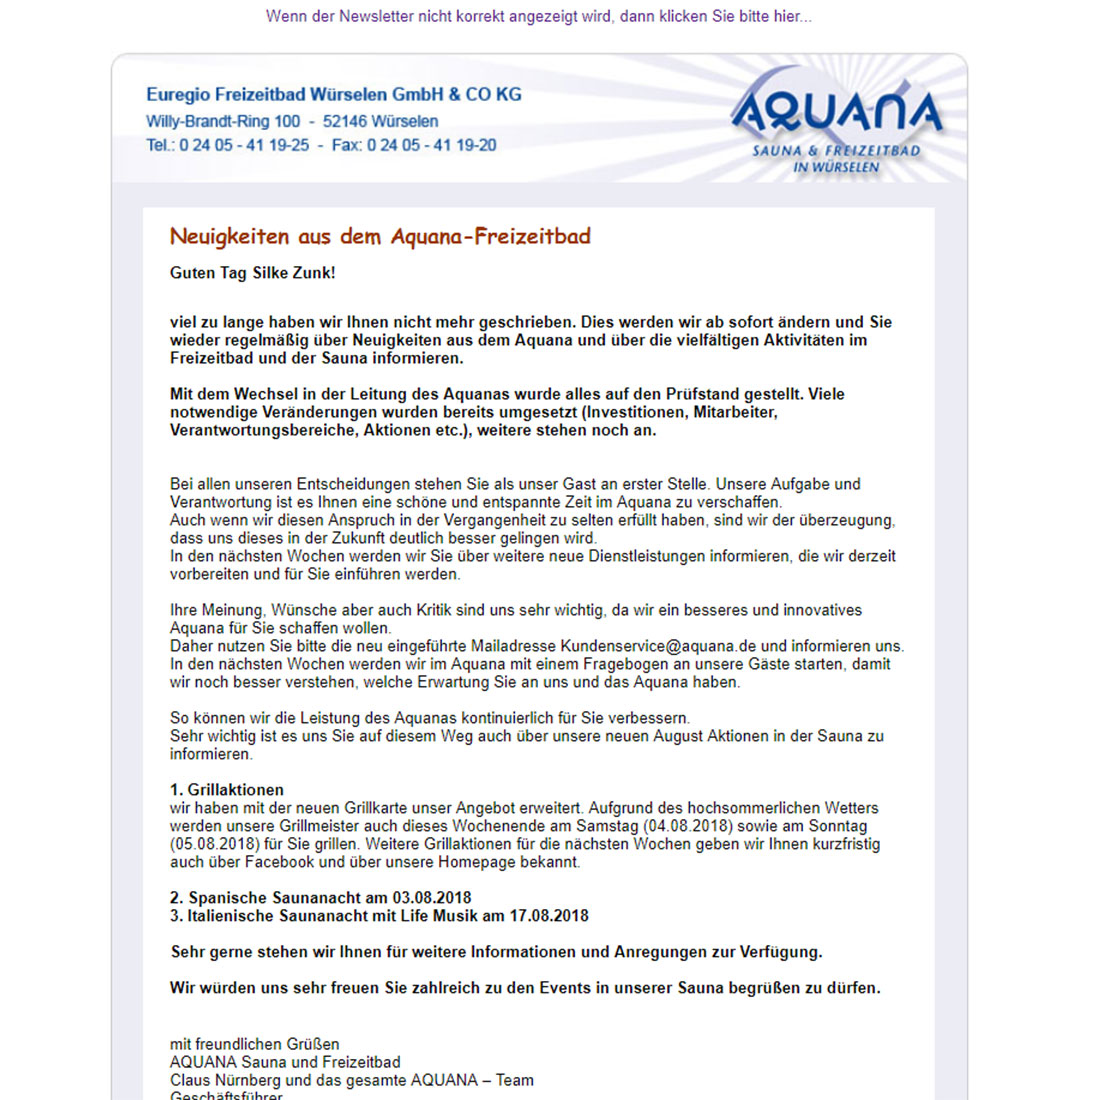 aquana Newsletter